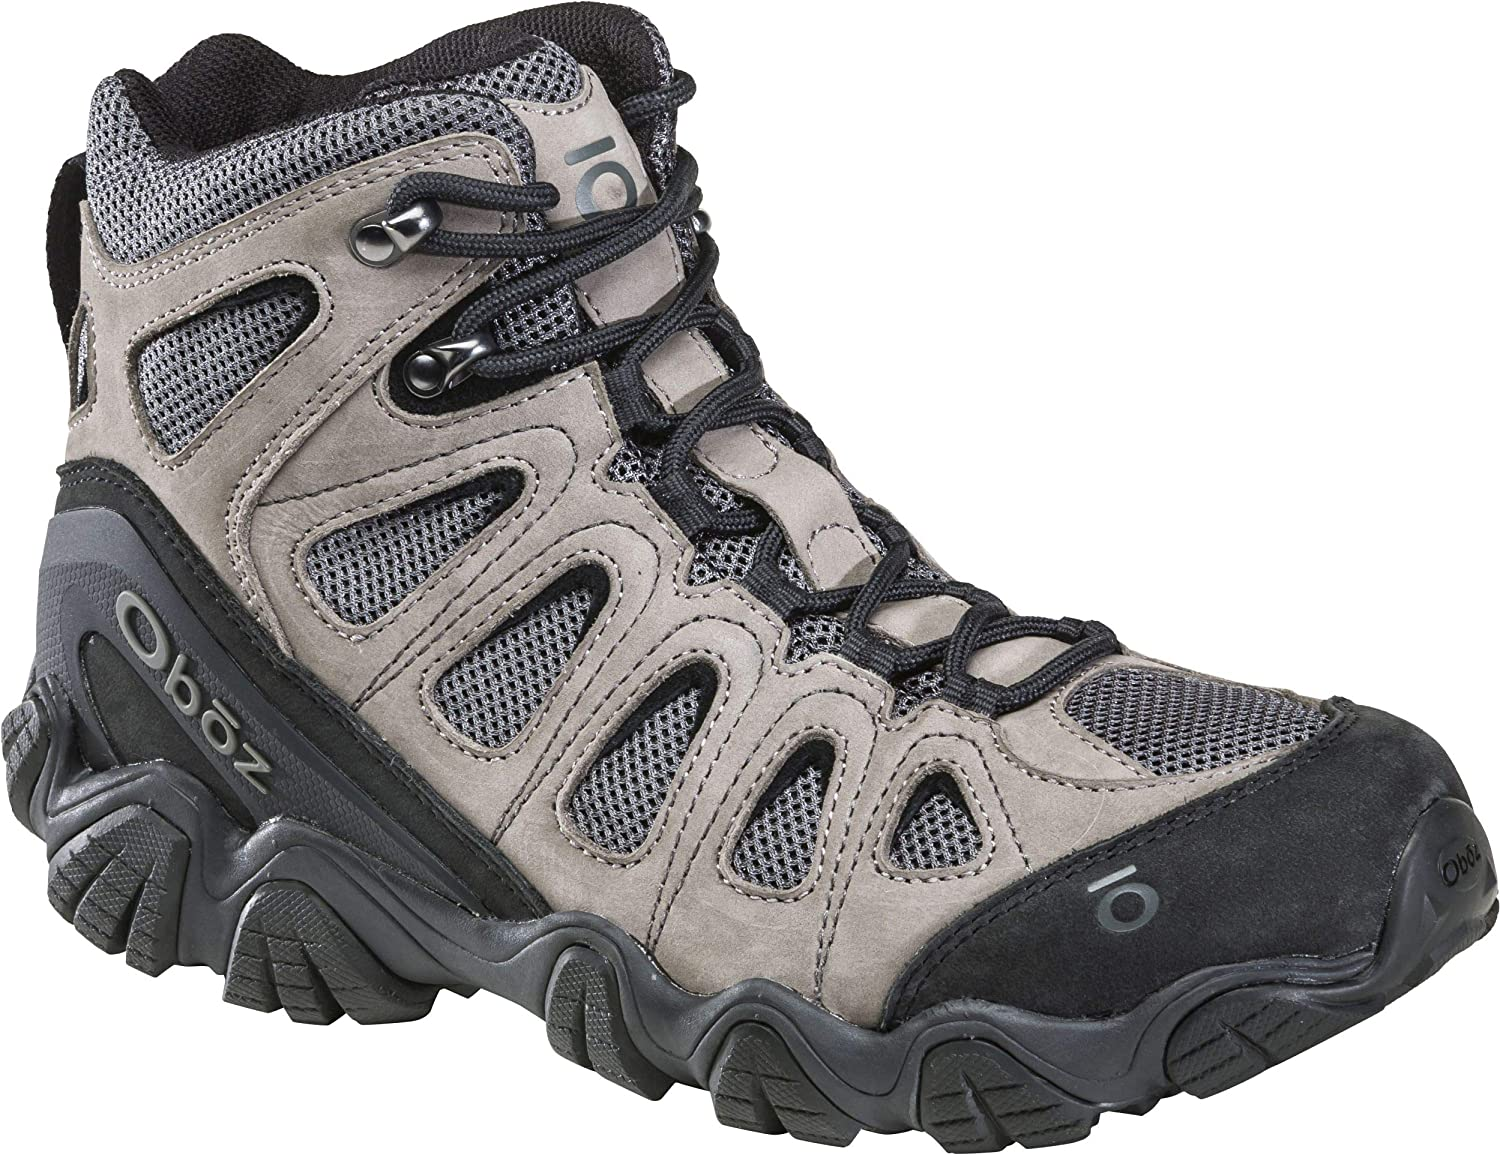 Oboz Sawtooth II Mid Quality inspection Boot Men's Ranking integrated 1st place Hiking -